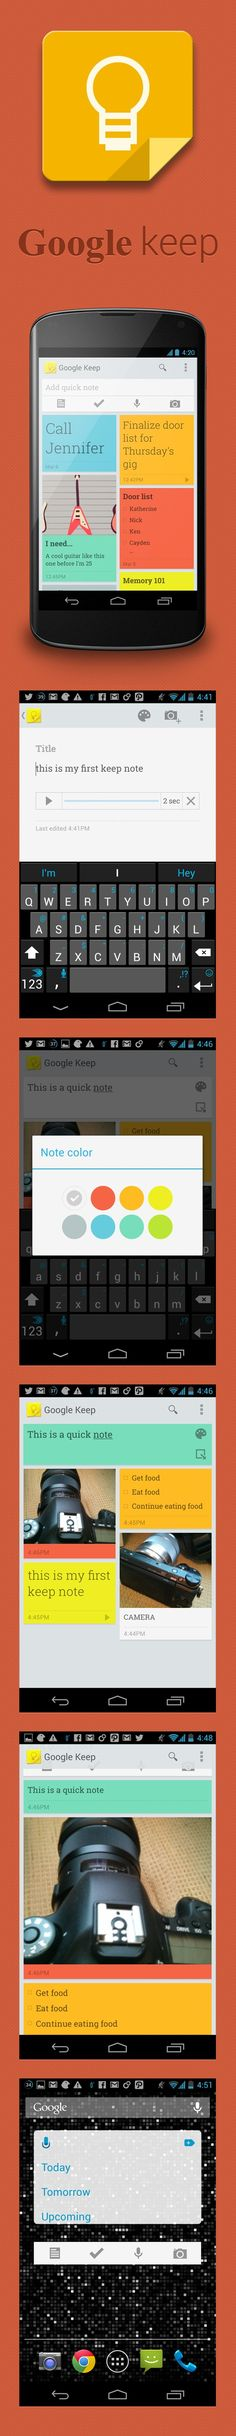 Google Keep - With Google Keep, you can create notes, checklists, photos and voice memos やさしすぎる!?